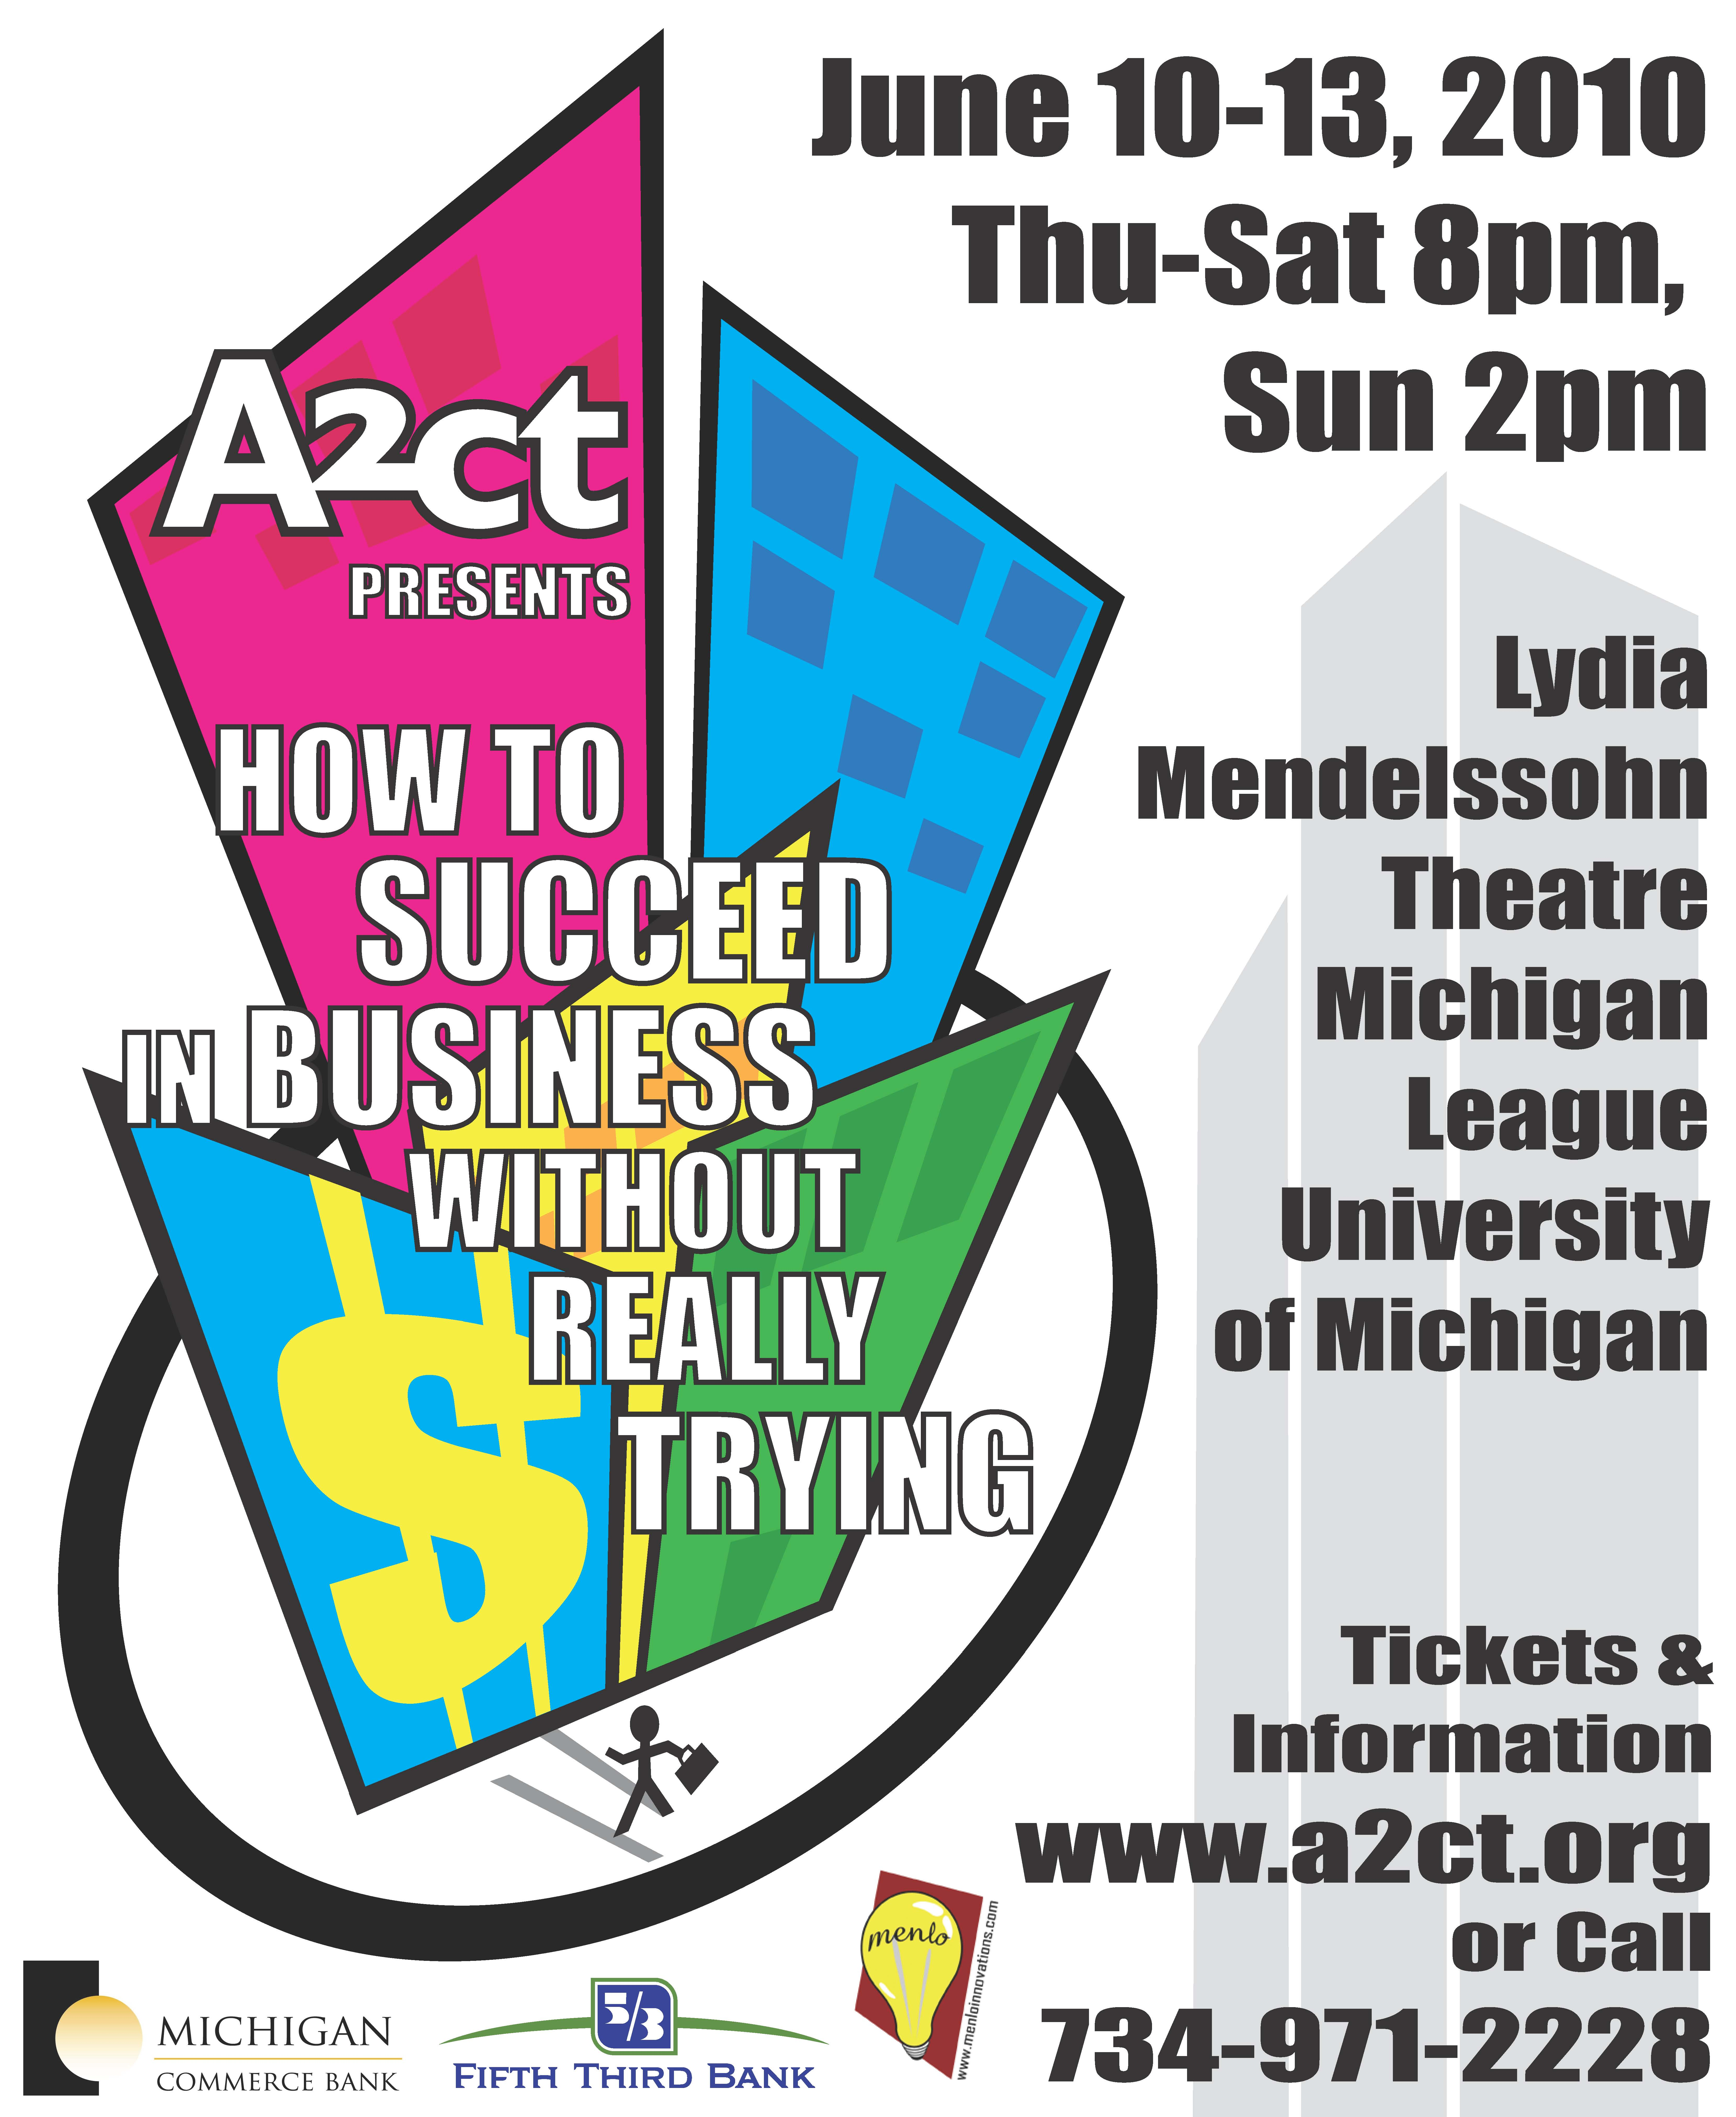 Ann Arbor Civic Theatre Poster: How to Succeed in Business Without Really Trying image